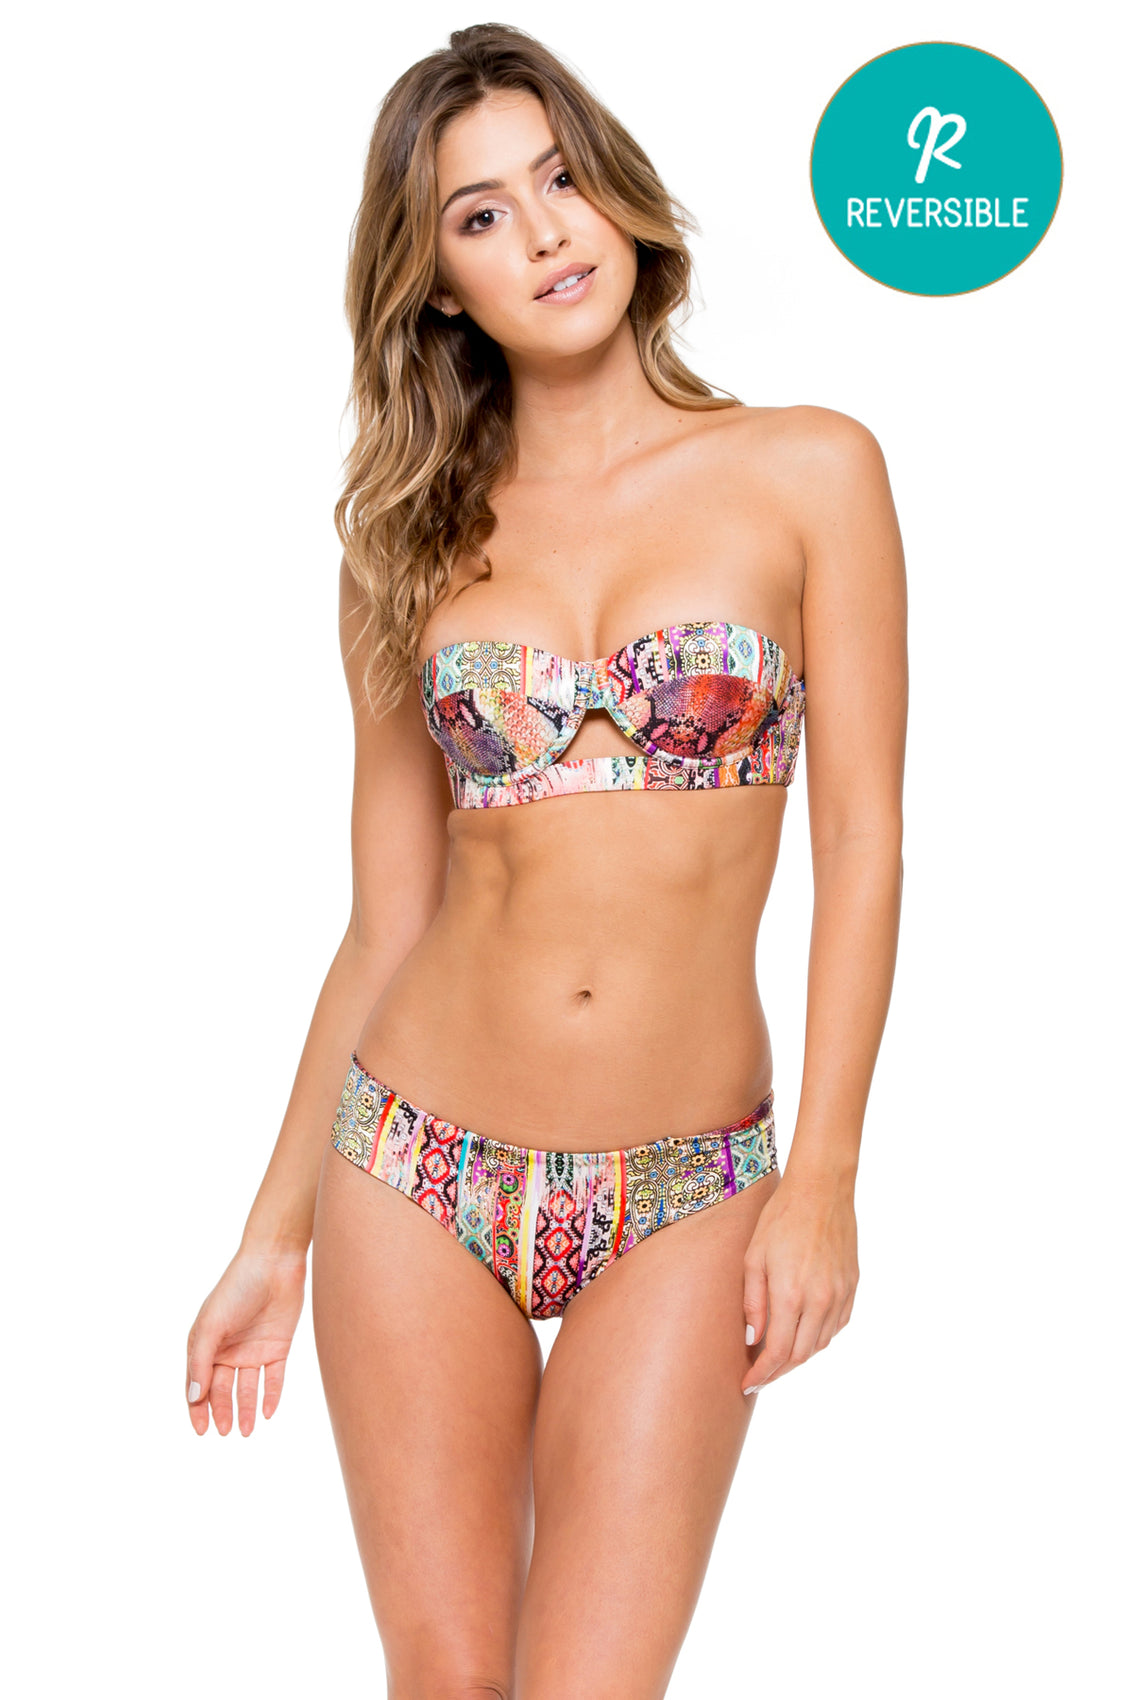 MY WAY - Cut Out Underwire Top & Tab Sides Full Bottom • Multicolor (874457694252)